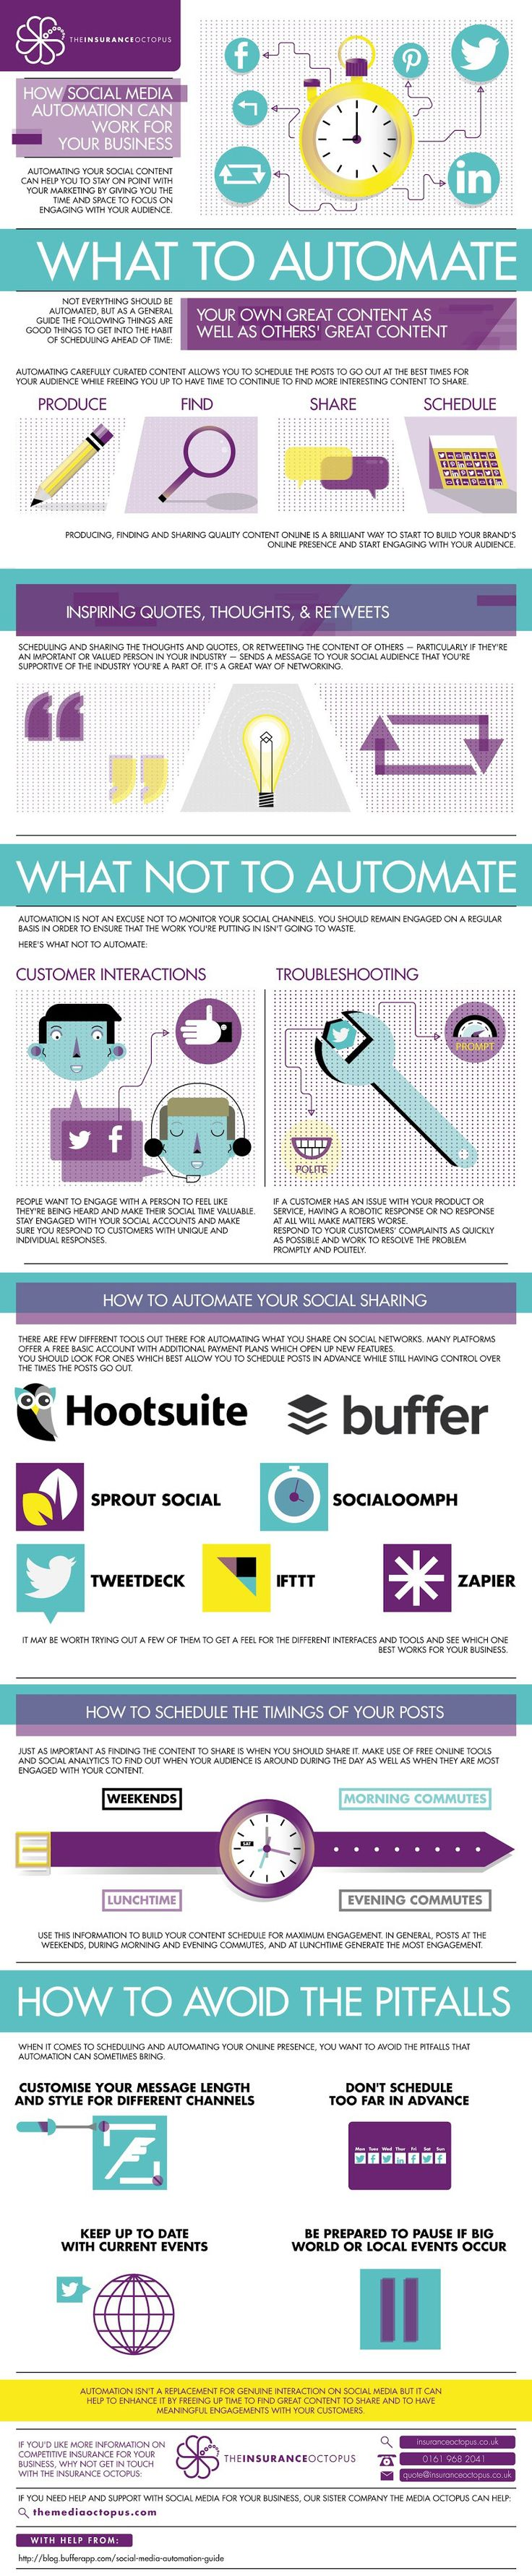 What to Automate: What Not to Automate #infographic